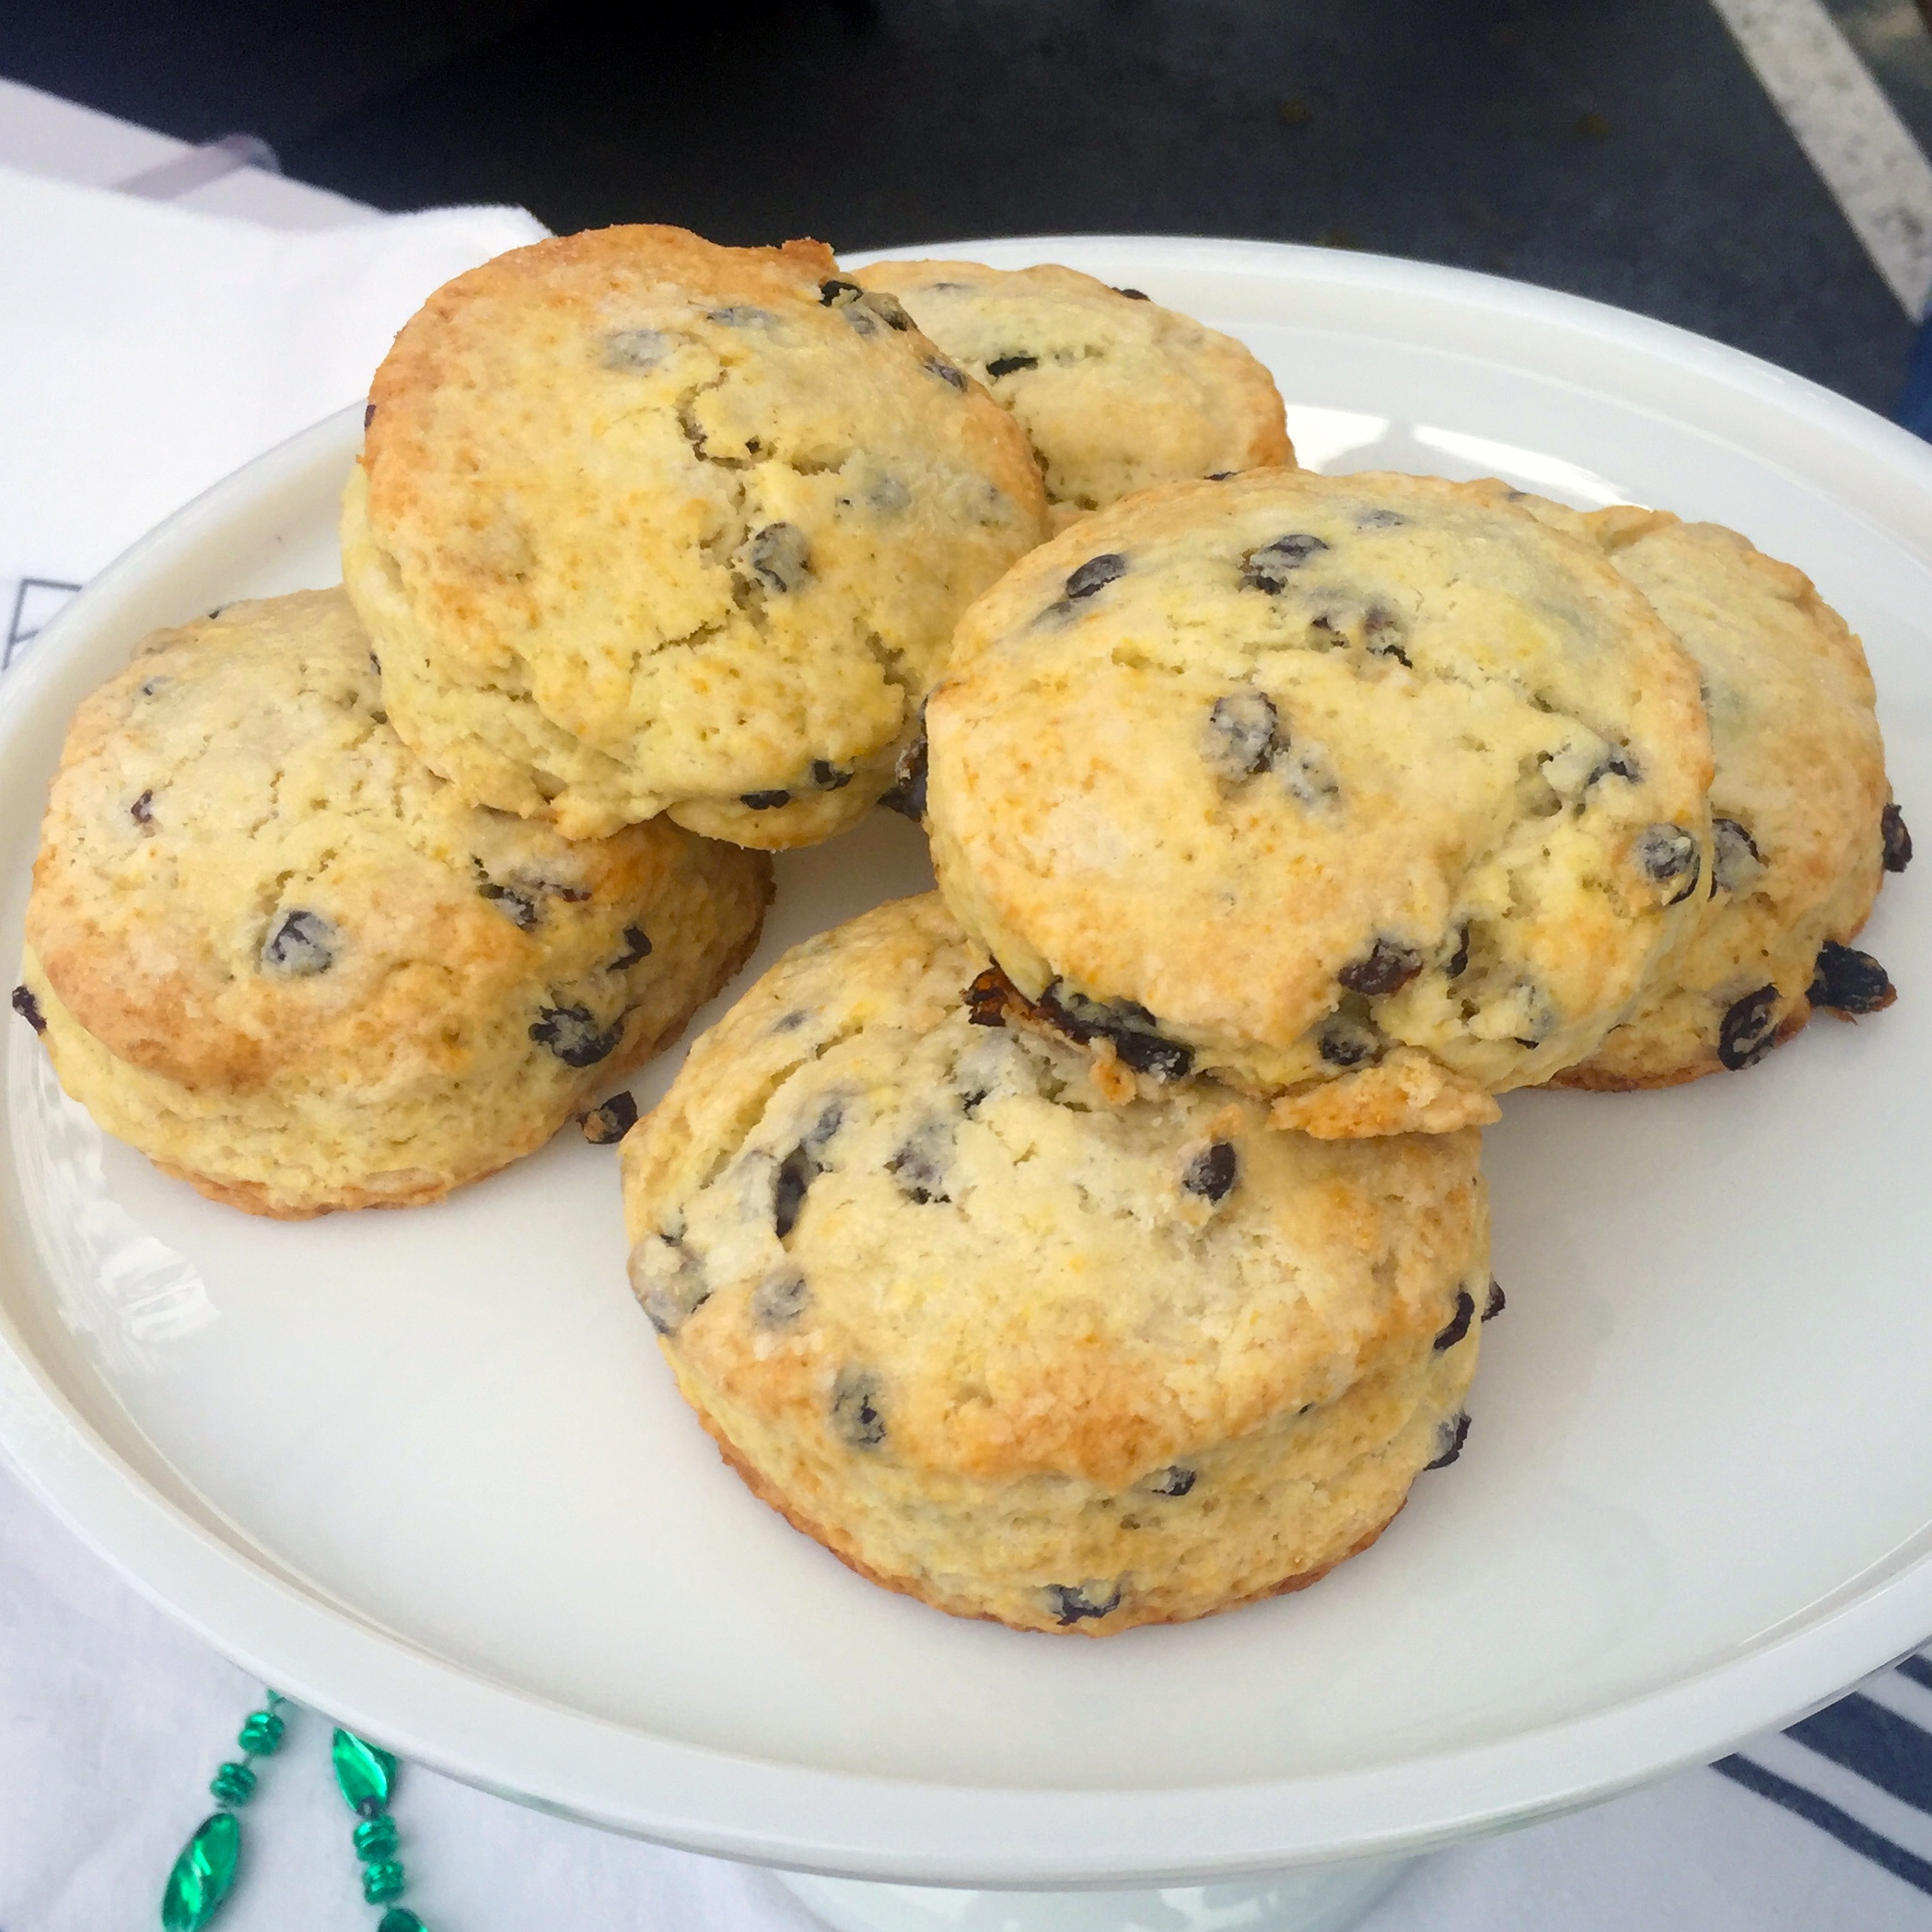 Scones (pictured with currants): $12/dozen